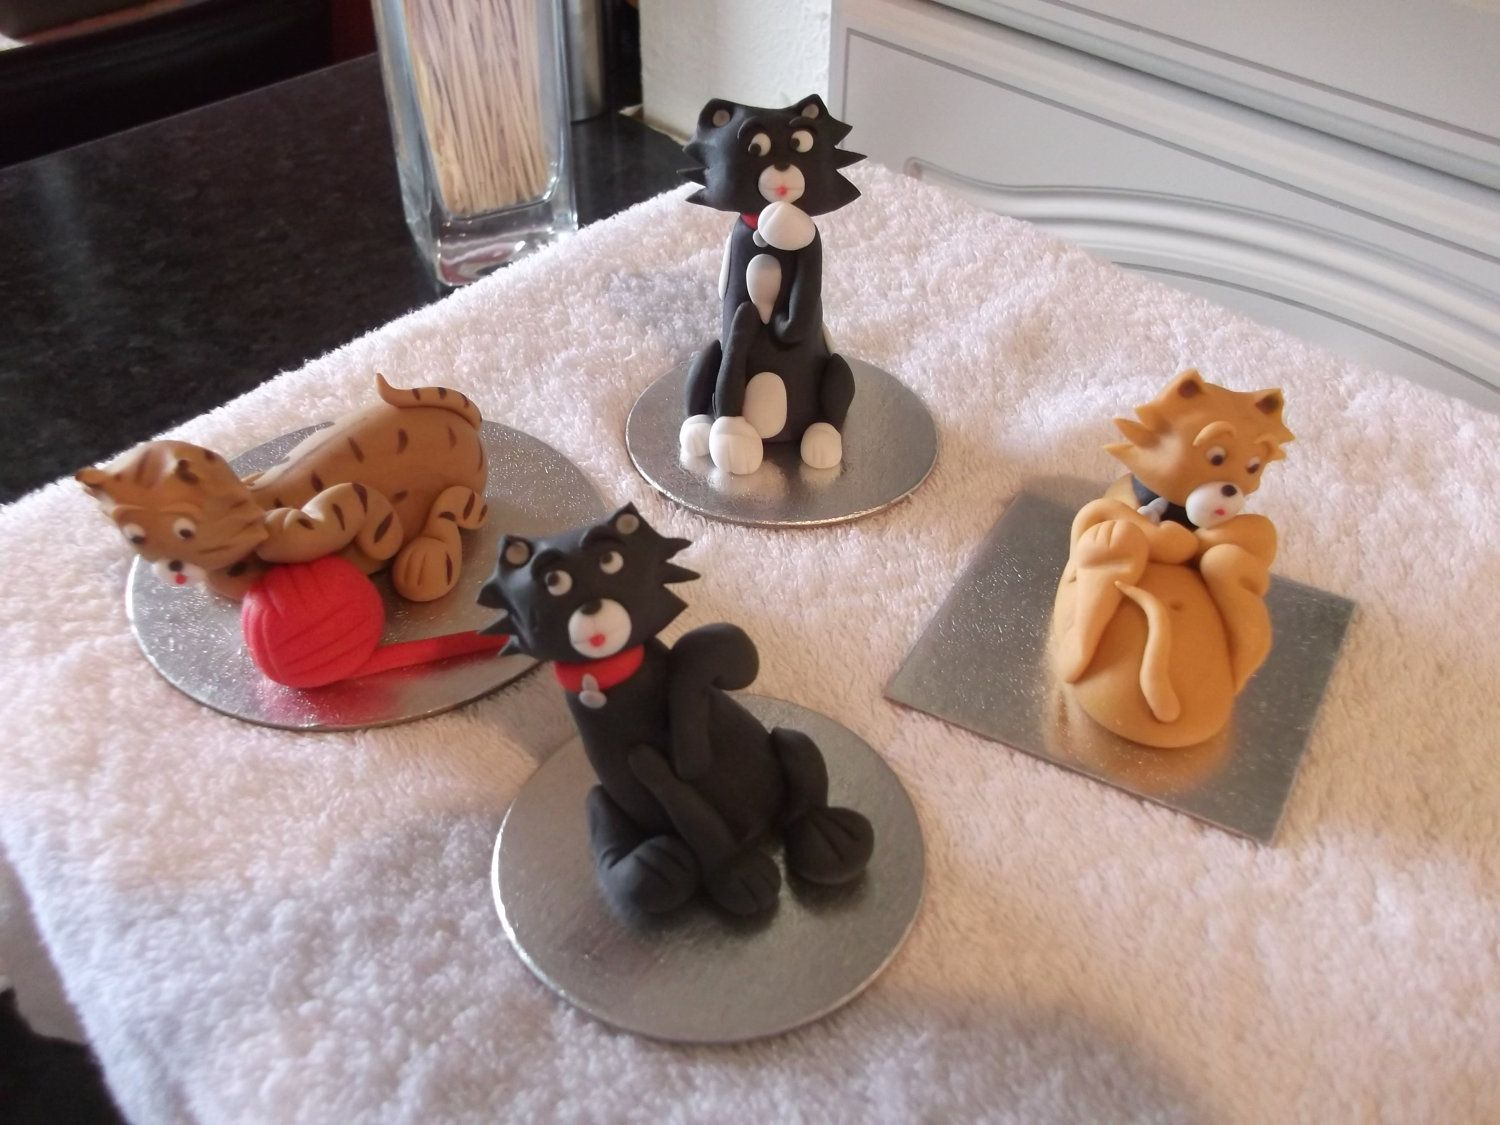 Edible Cat Cake Toppers Made With Fondant Icing 163 7 99